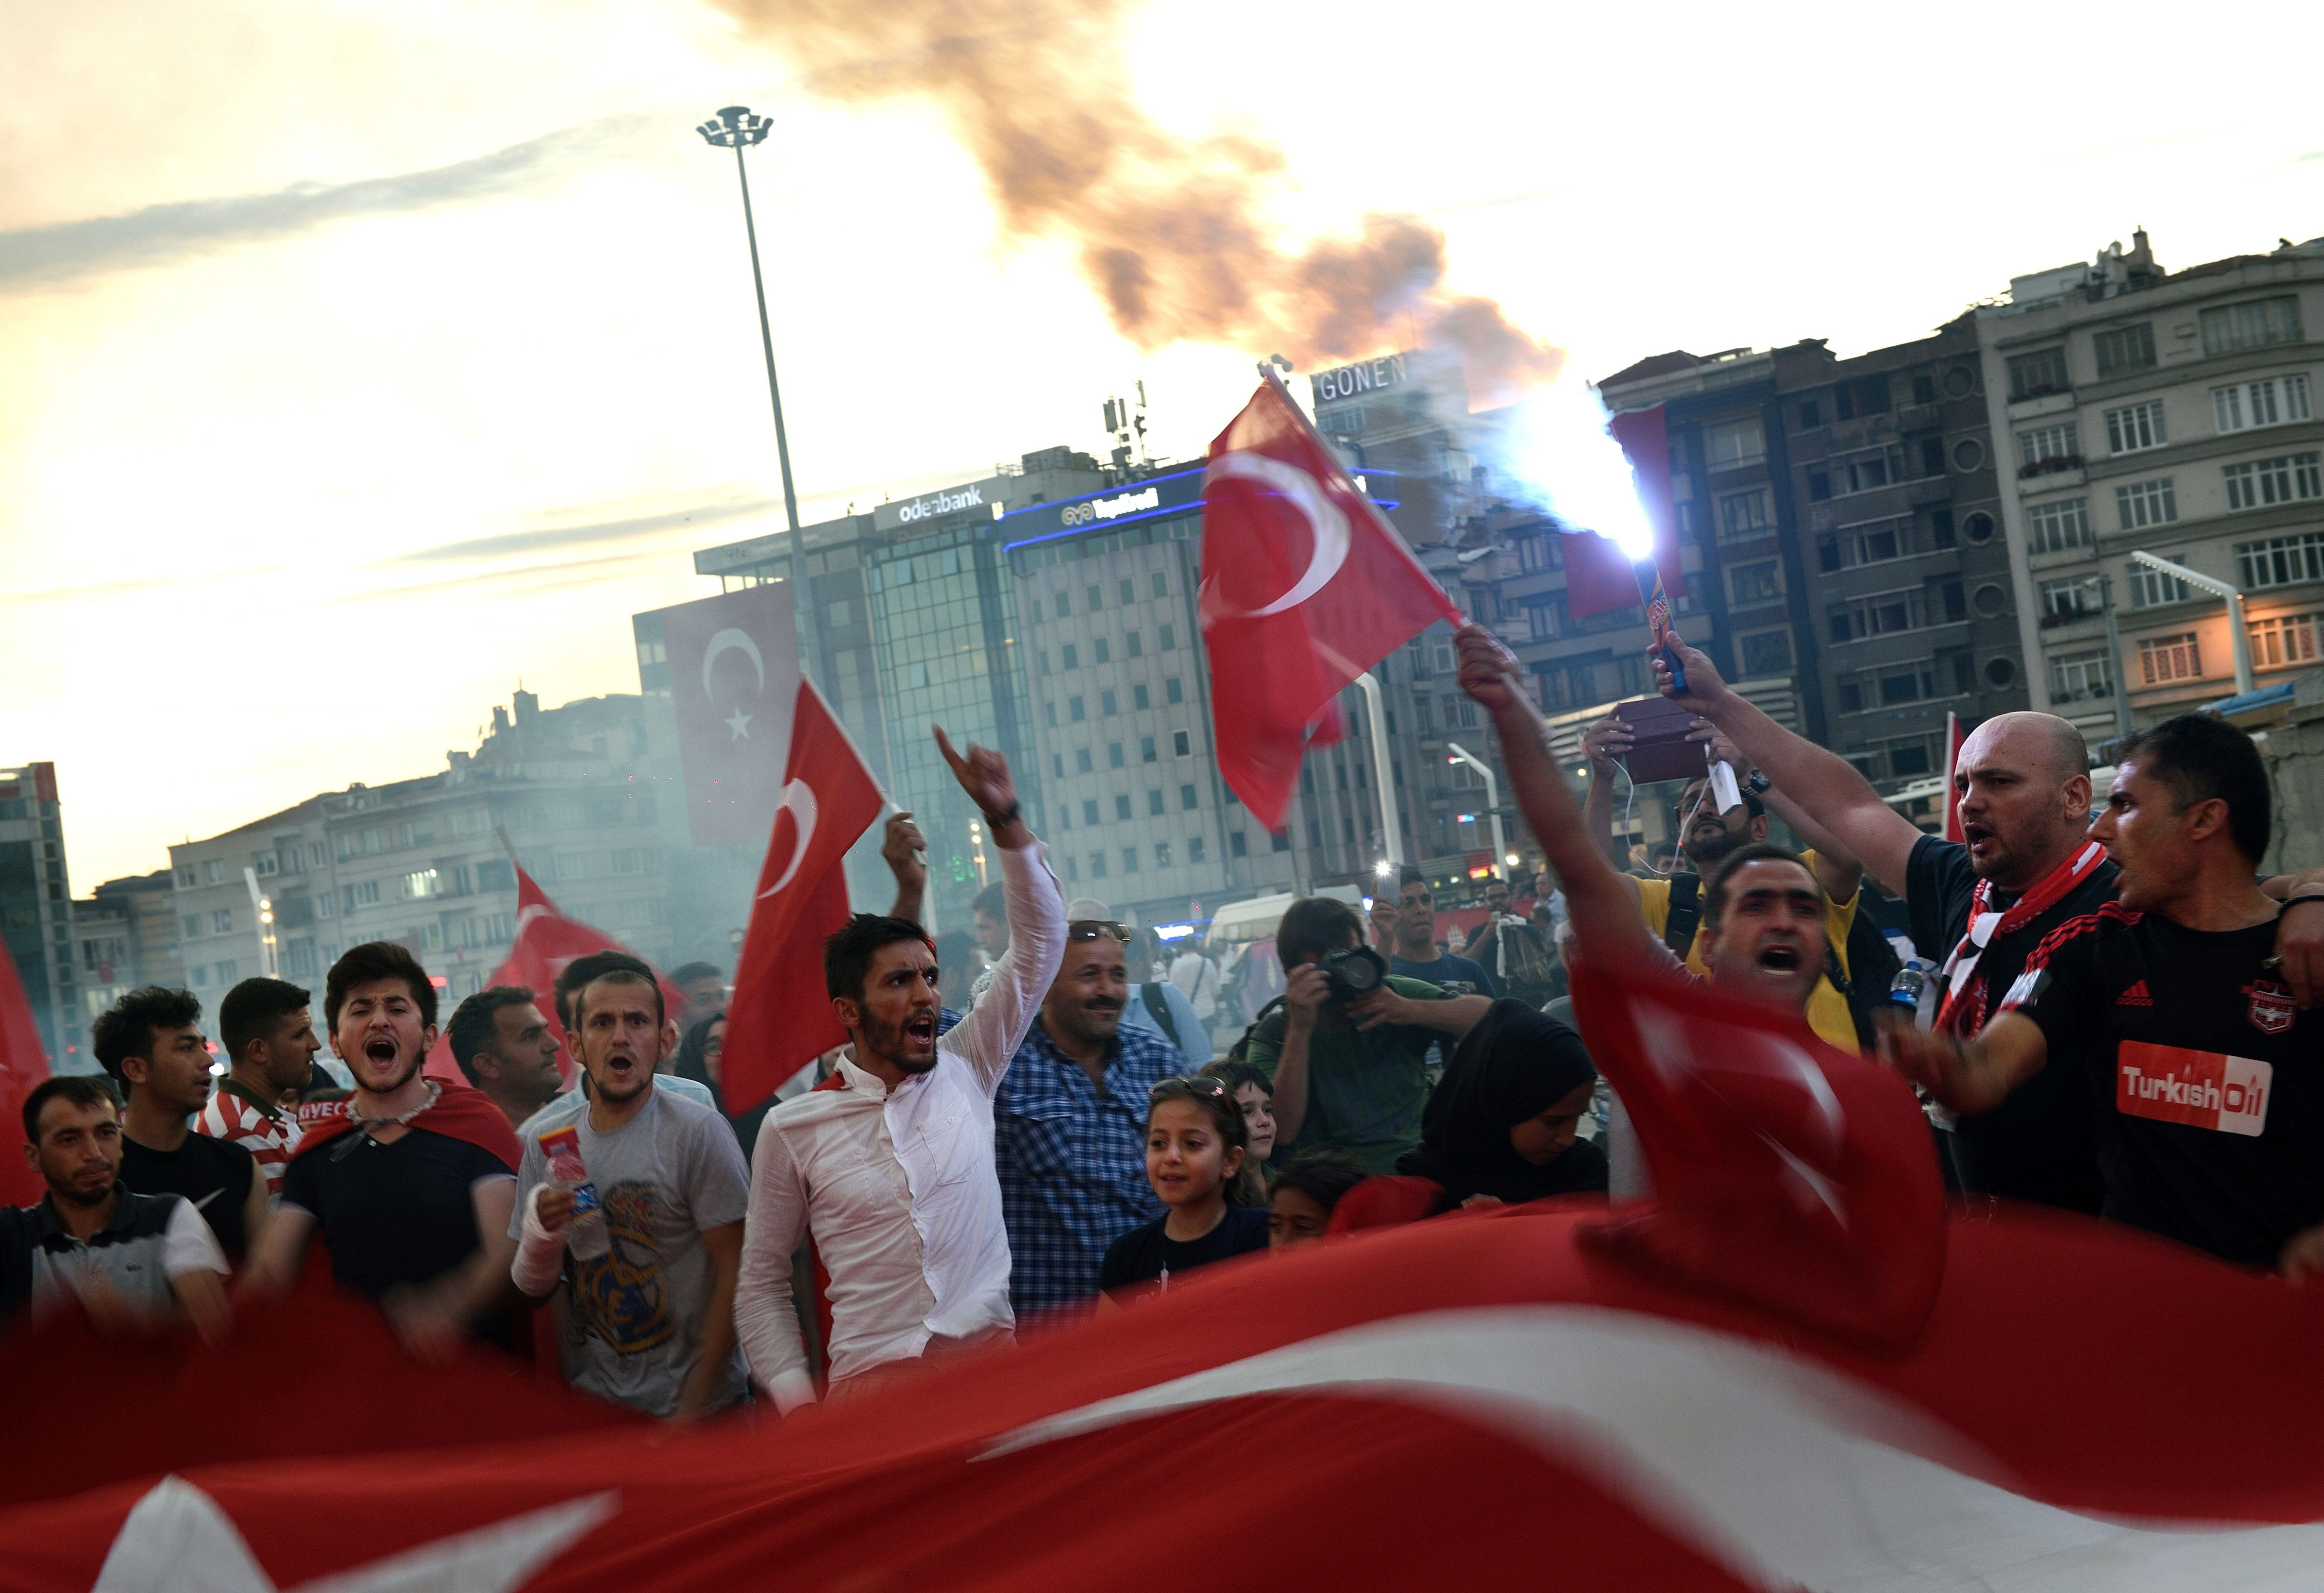 People shout, gestures and hold Turkish national flags as they gather in Taksim square in Istanbul, on July 18, 2016 following the military failed coup attempt of July 15.